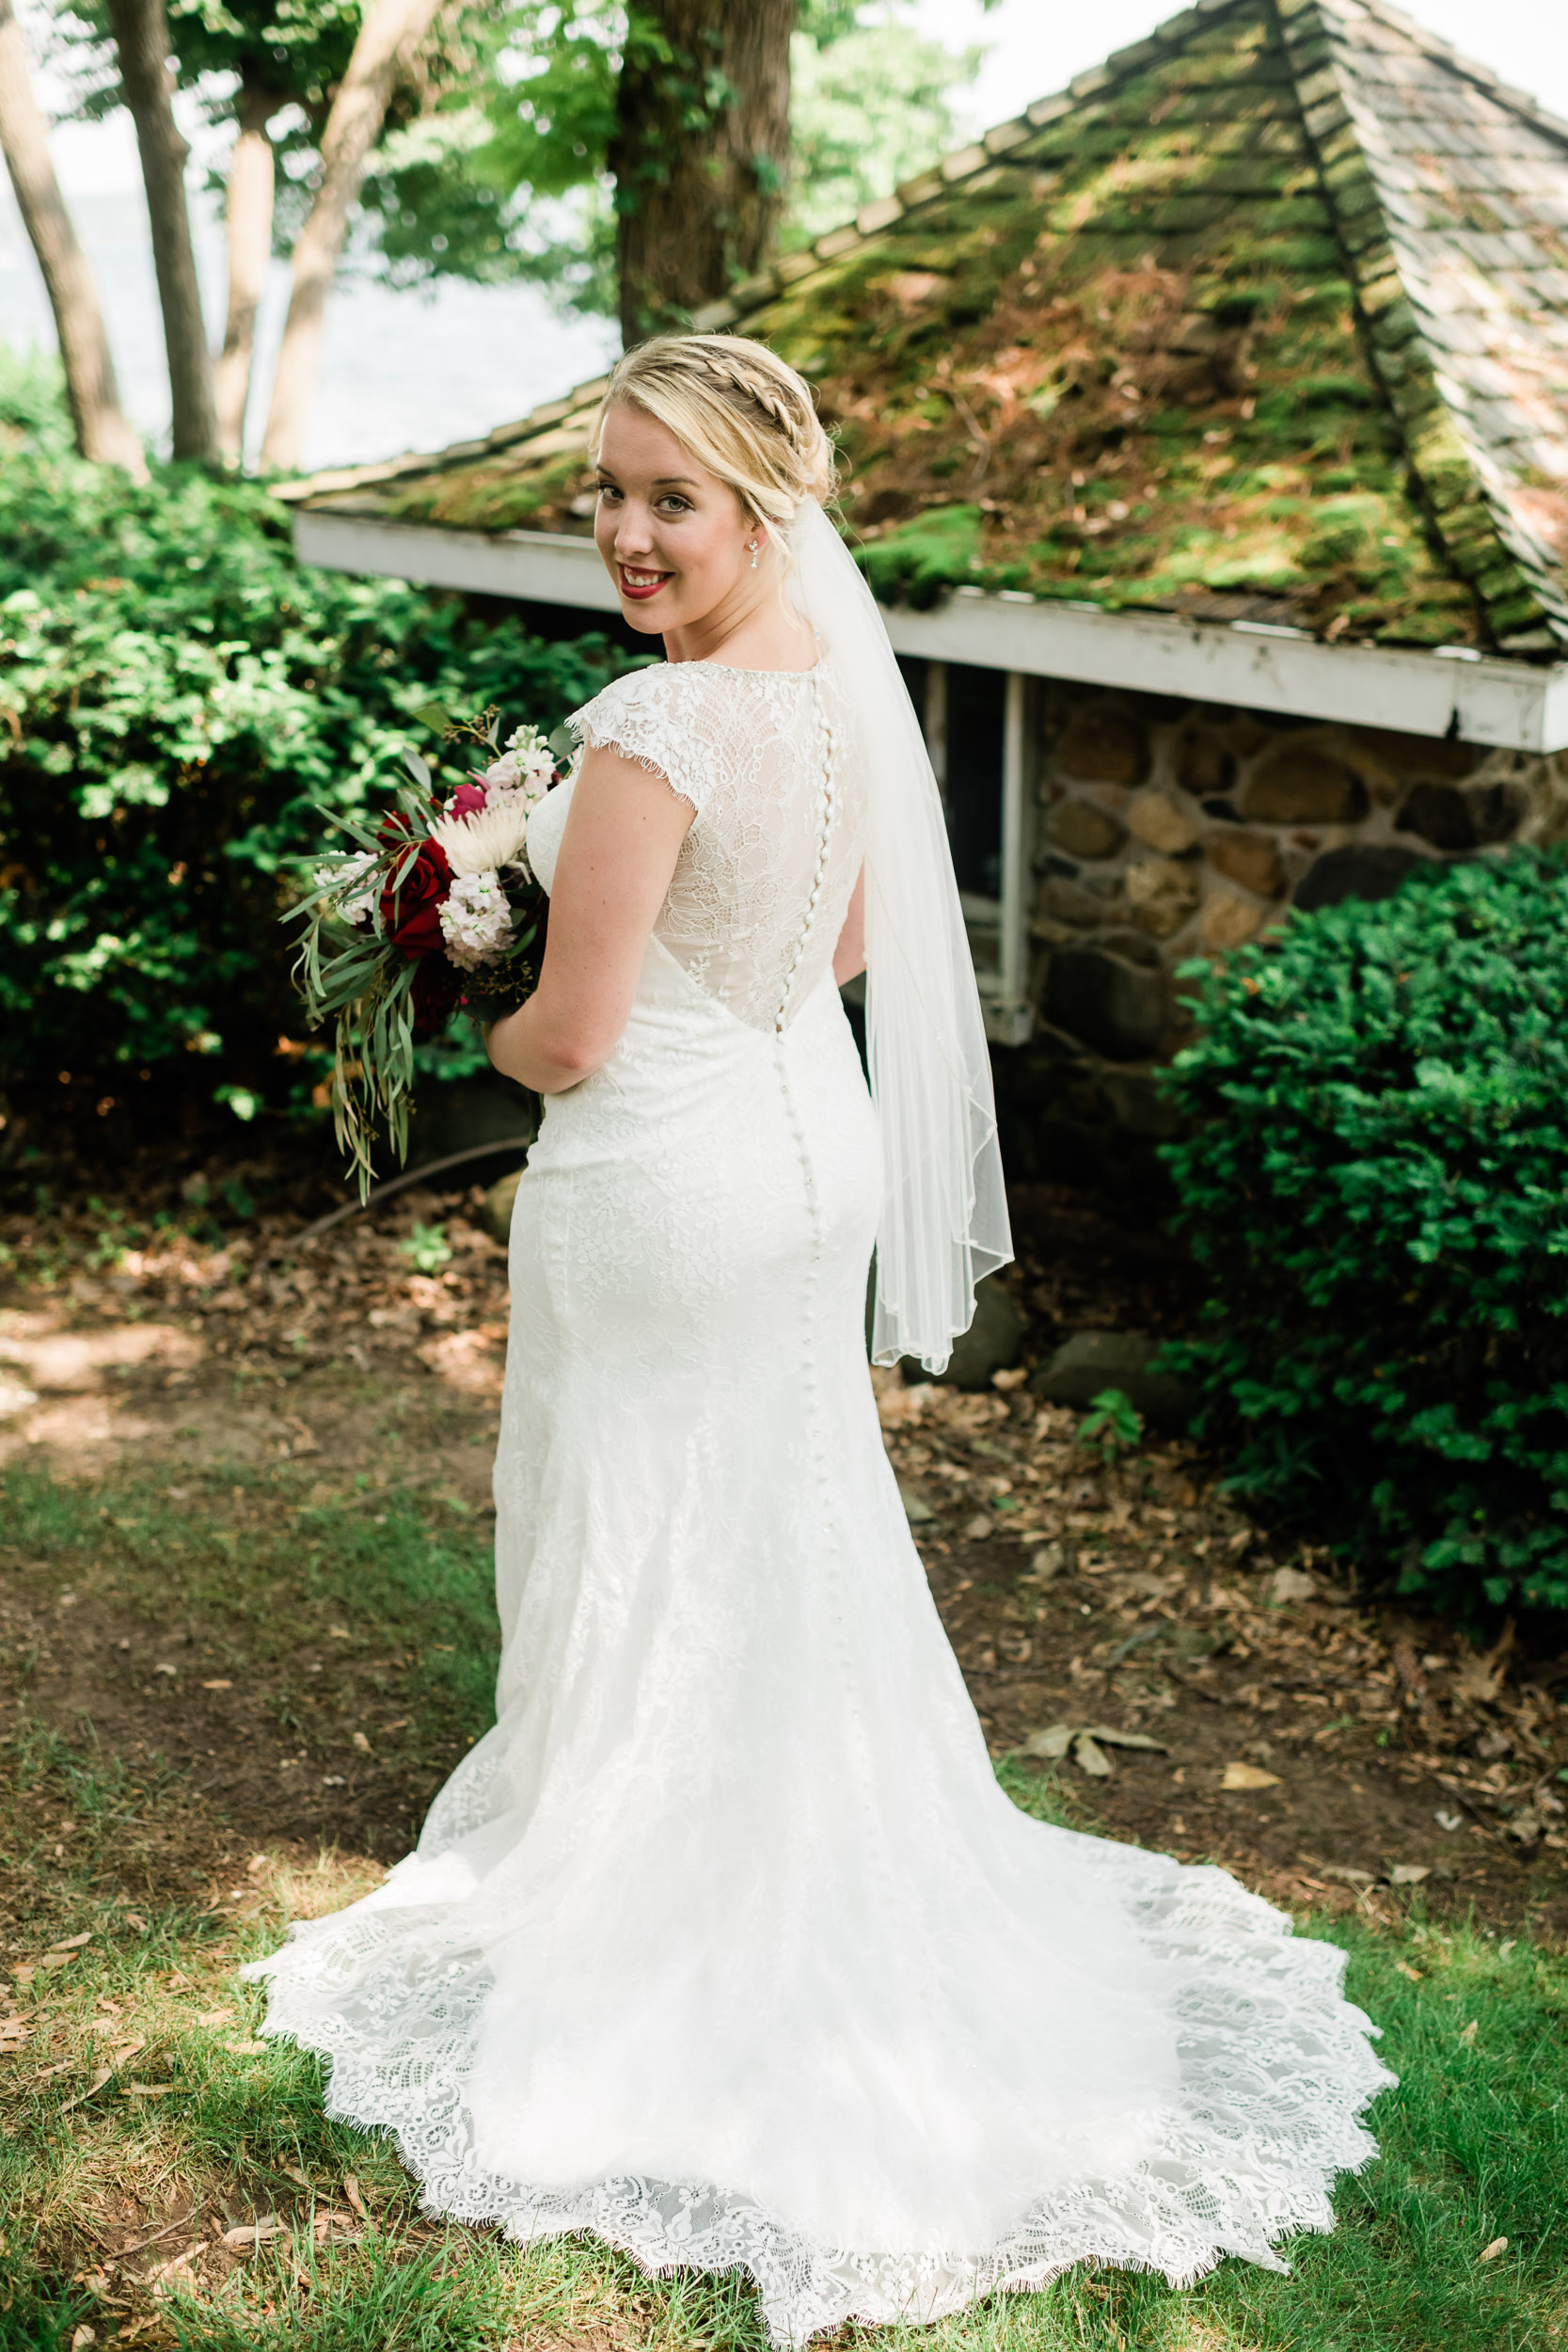 Bride showing off the back of her wedding dress